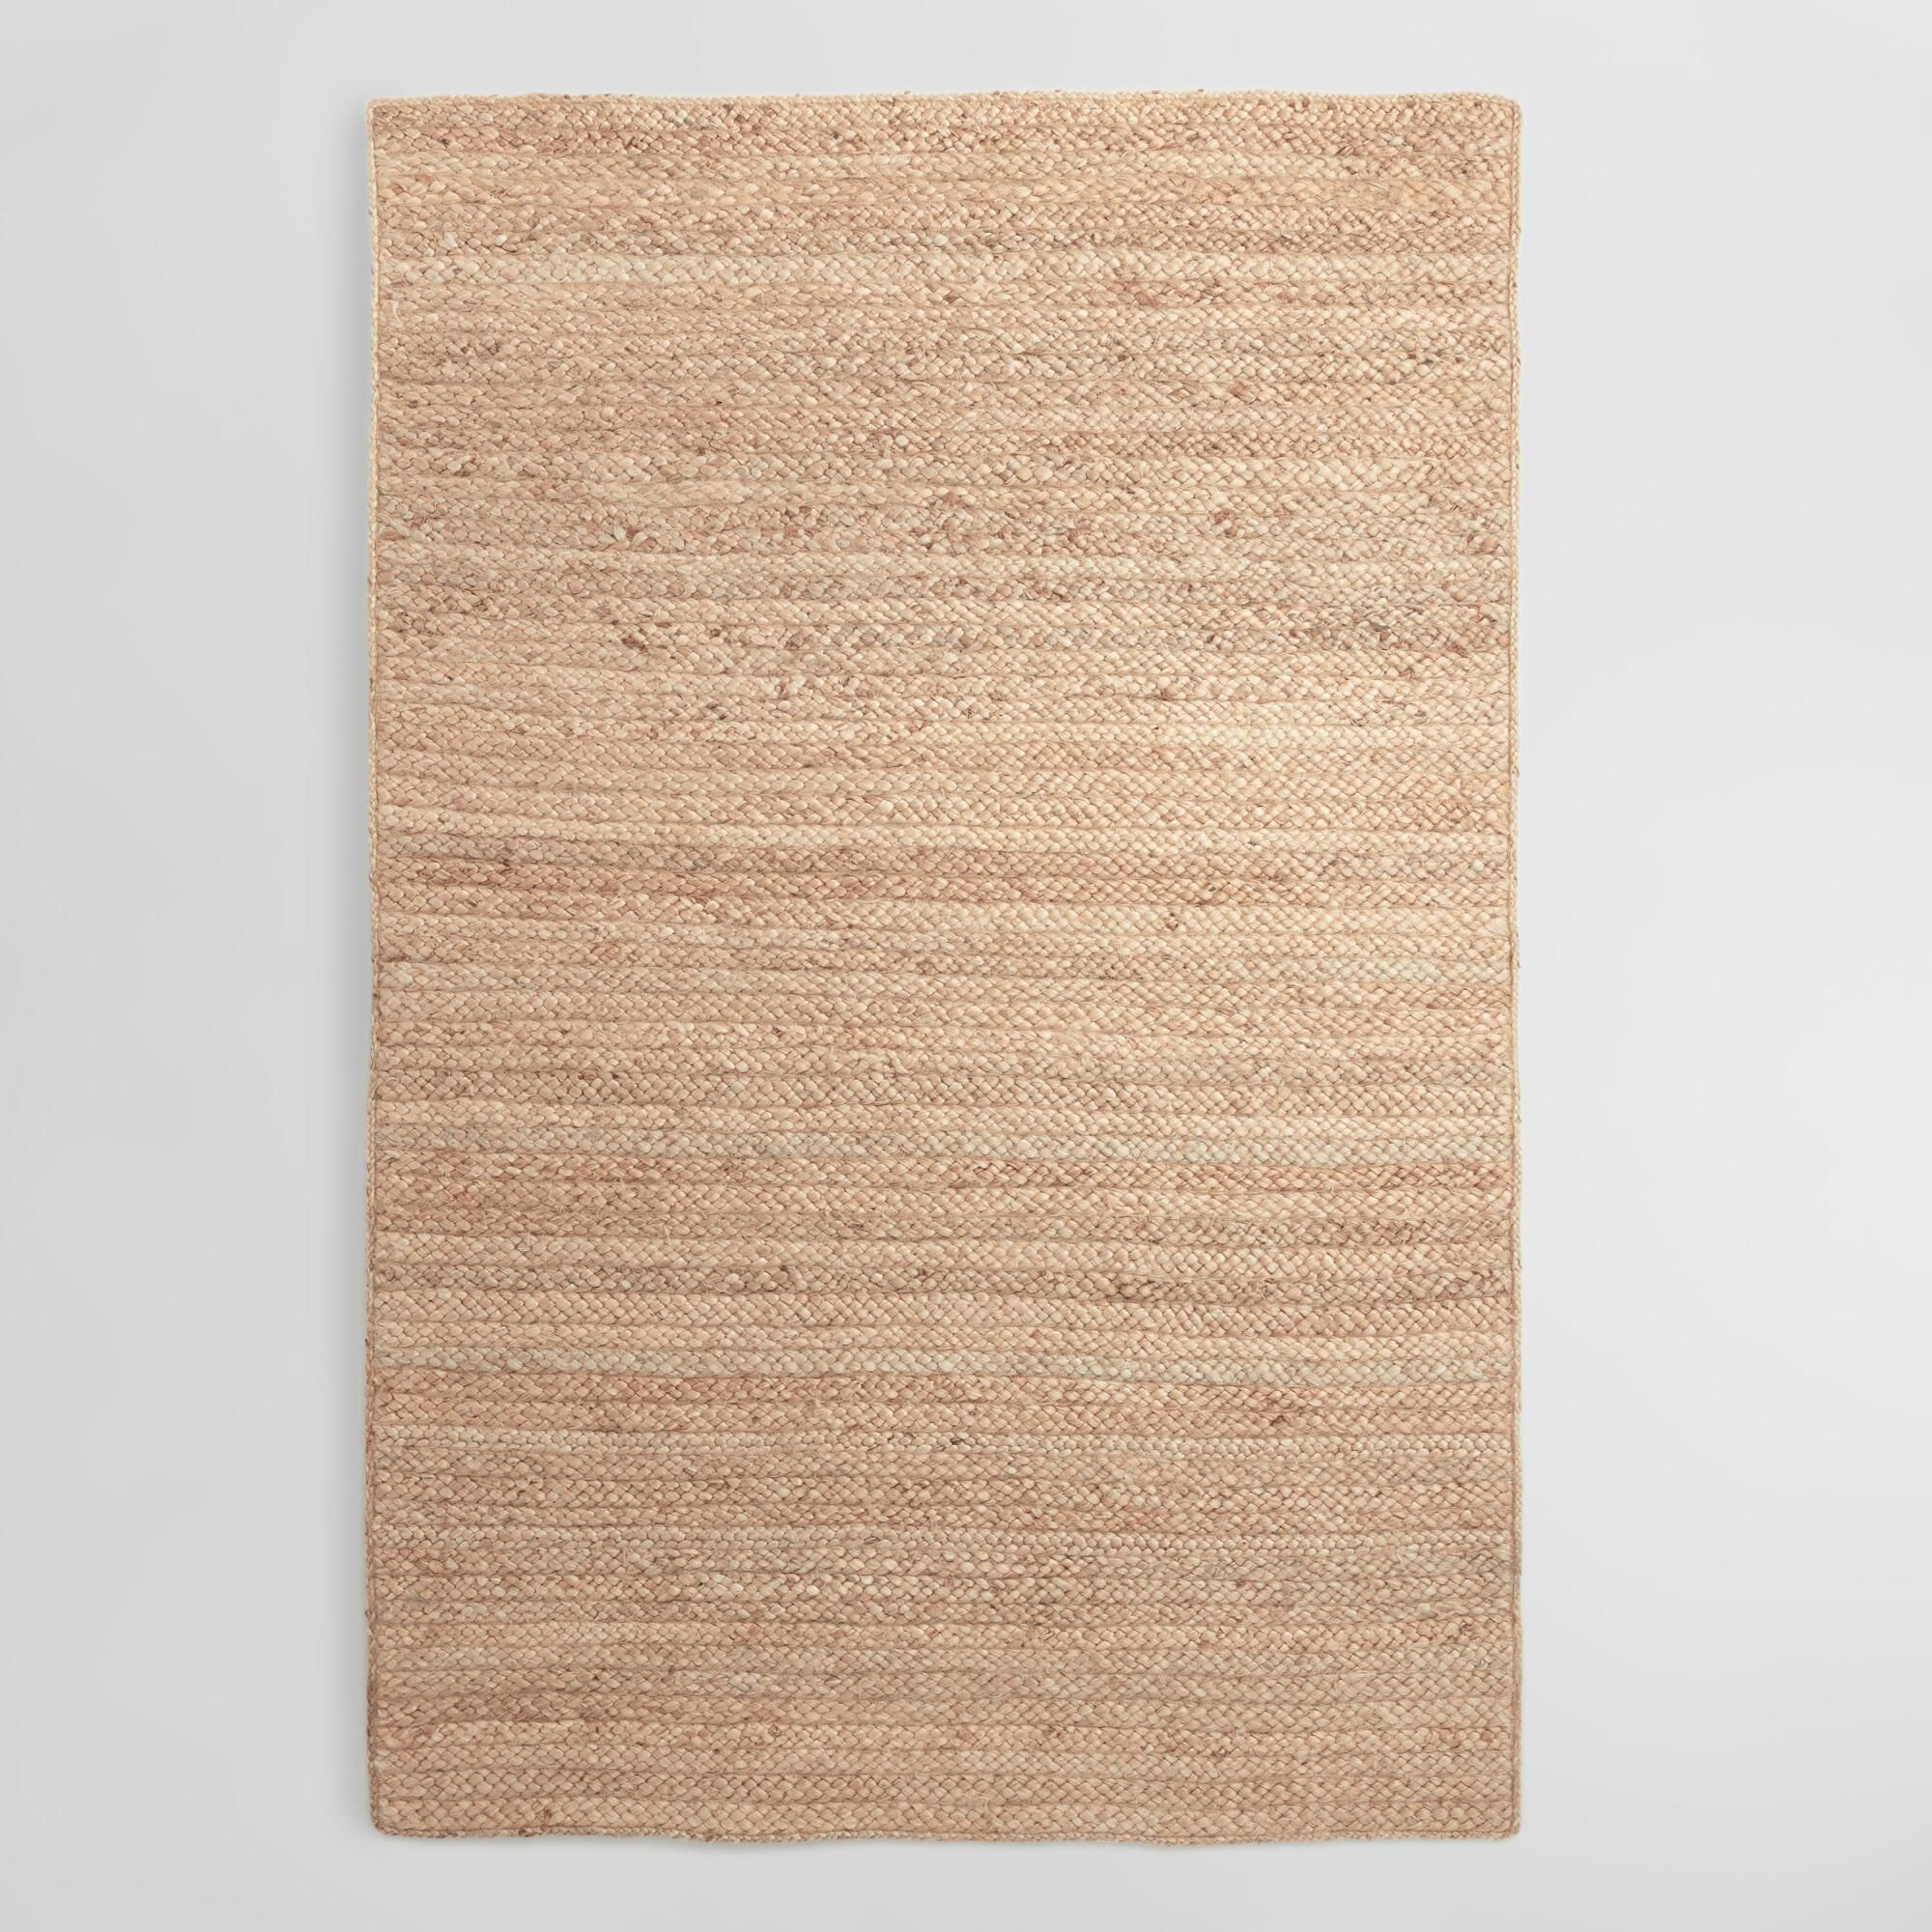 Natural Chunky Braided Jute Flynn Area Rug 9 X 12 By World